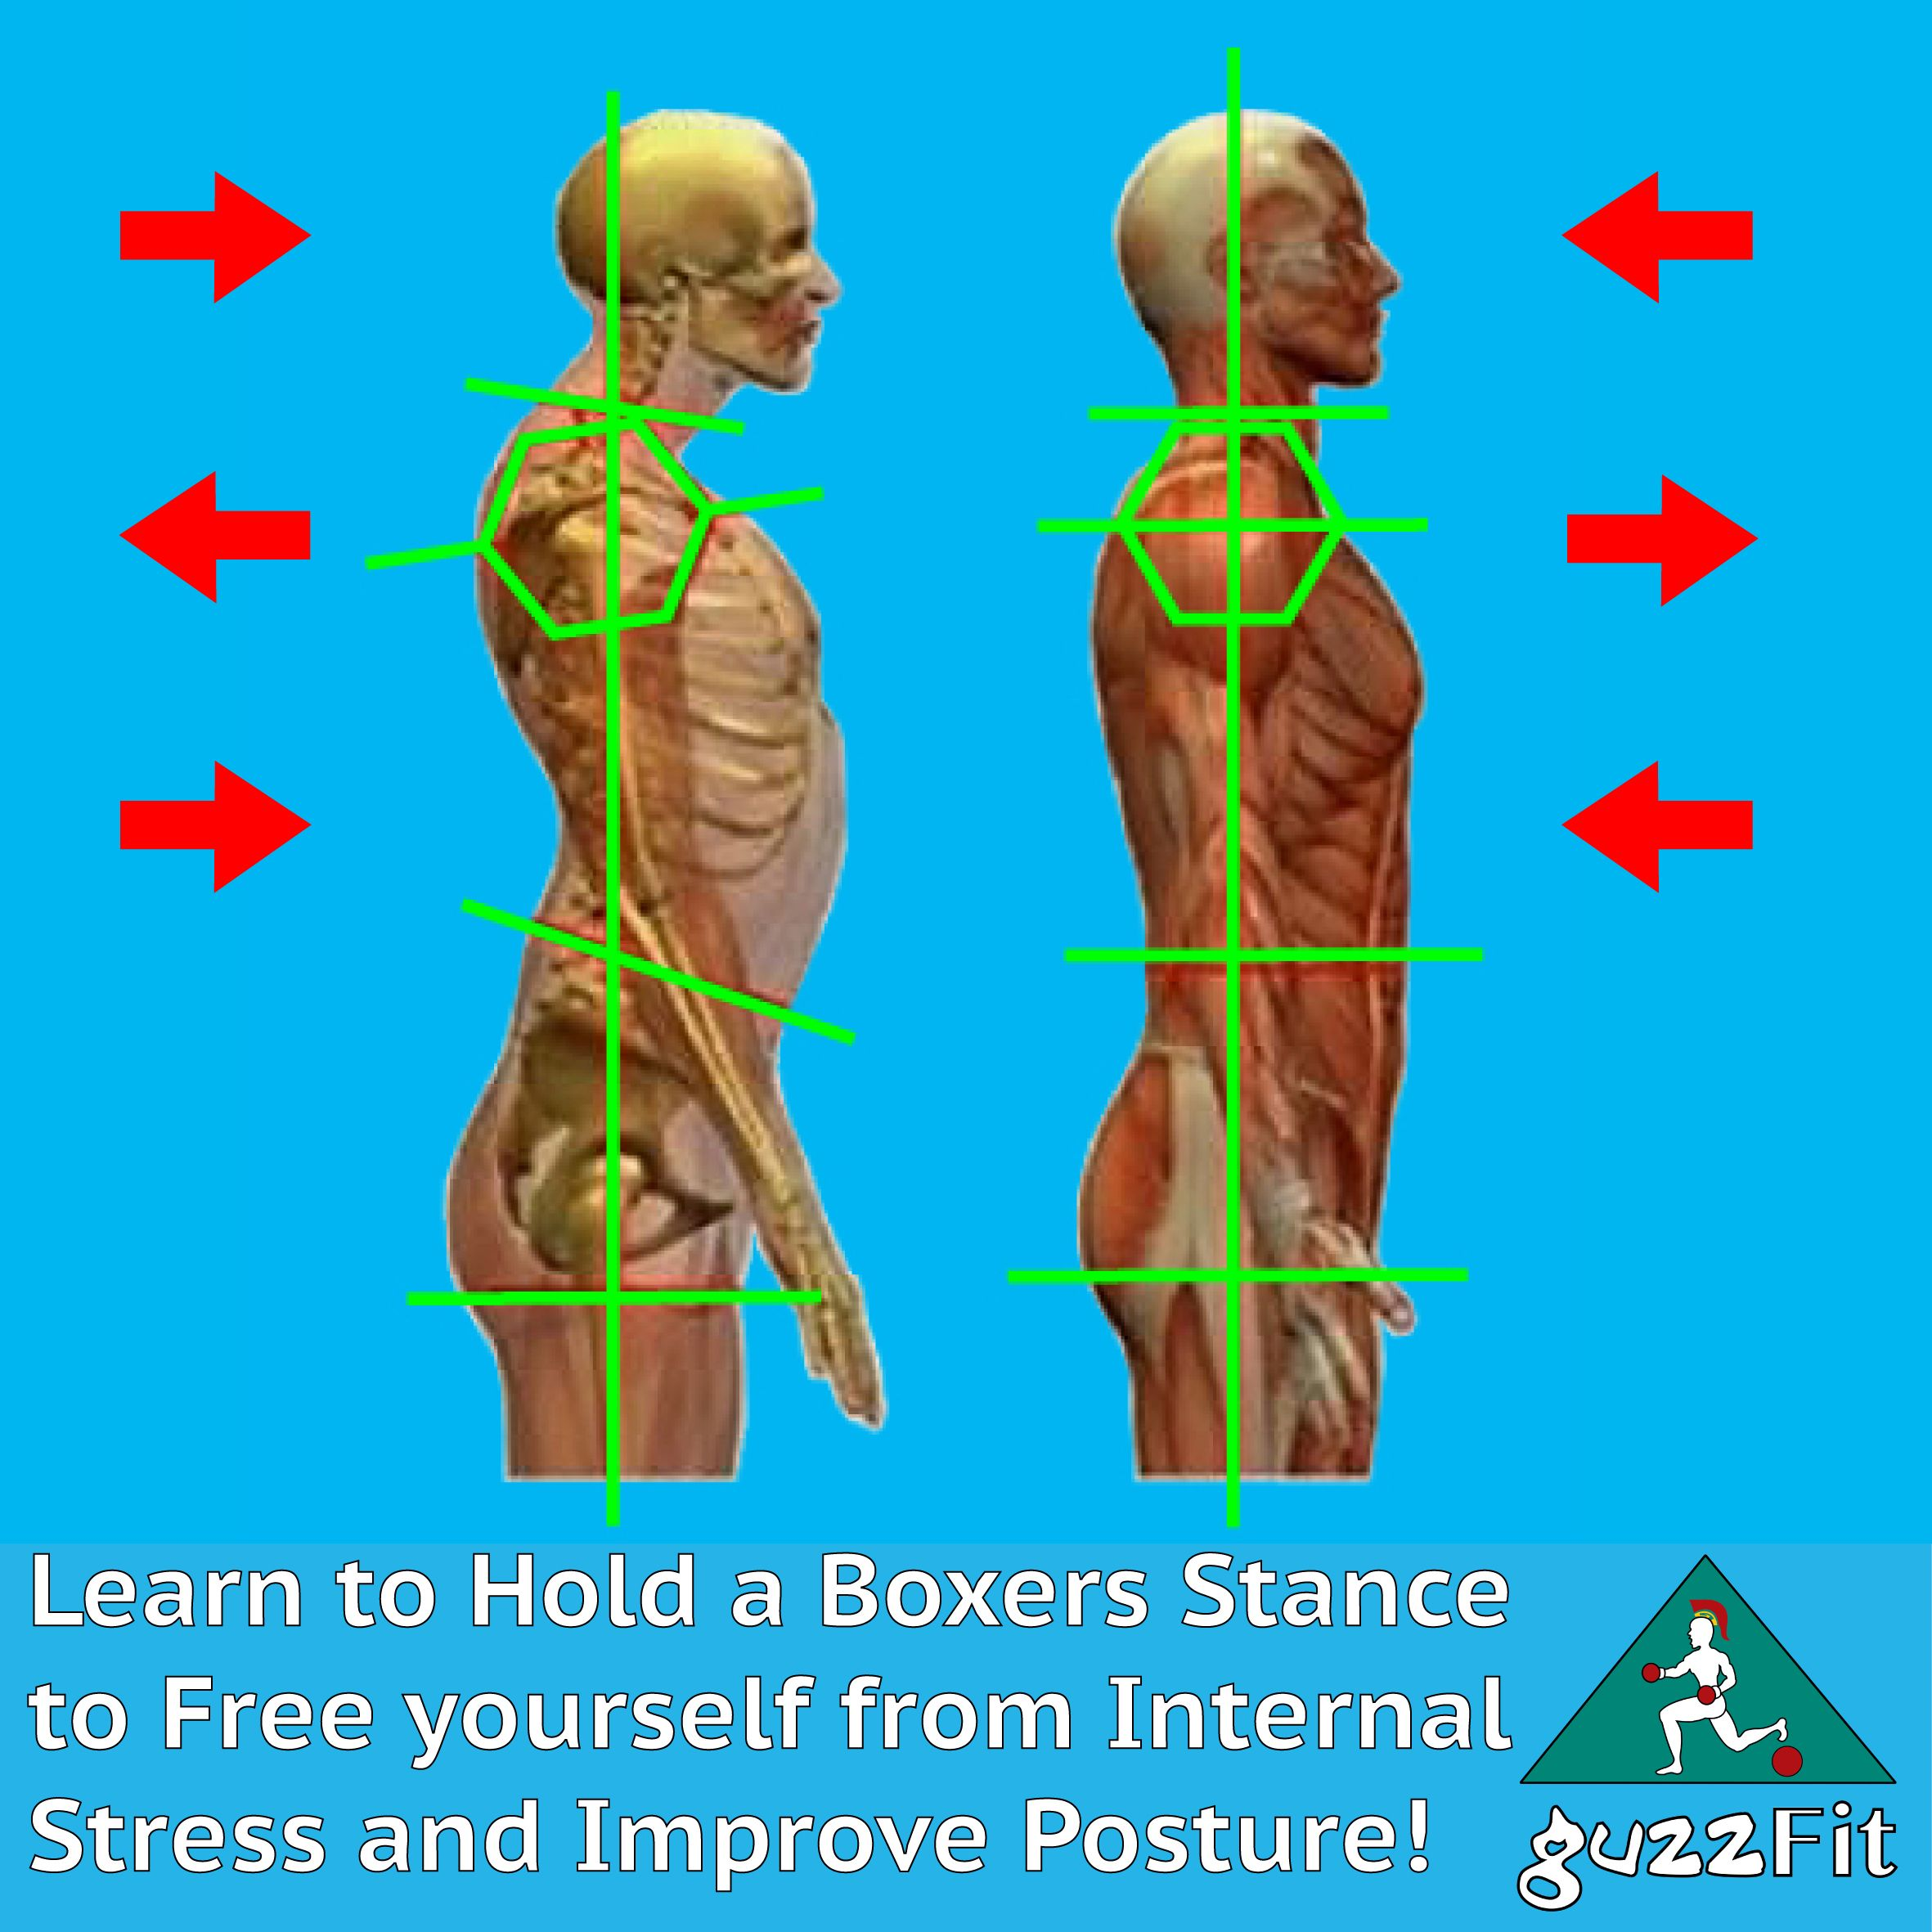 Learn To Hold A Boxers Stance To Free Yourself From Internal Stress And Improve Posture A Free Trial Pt Workout Results Personal Trainers Fitness Training